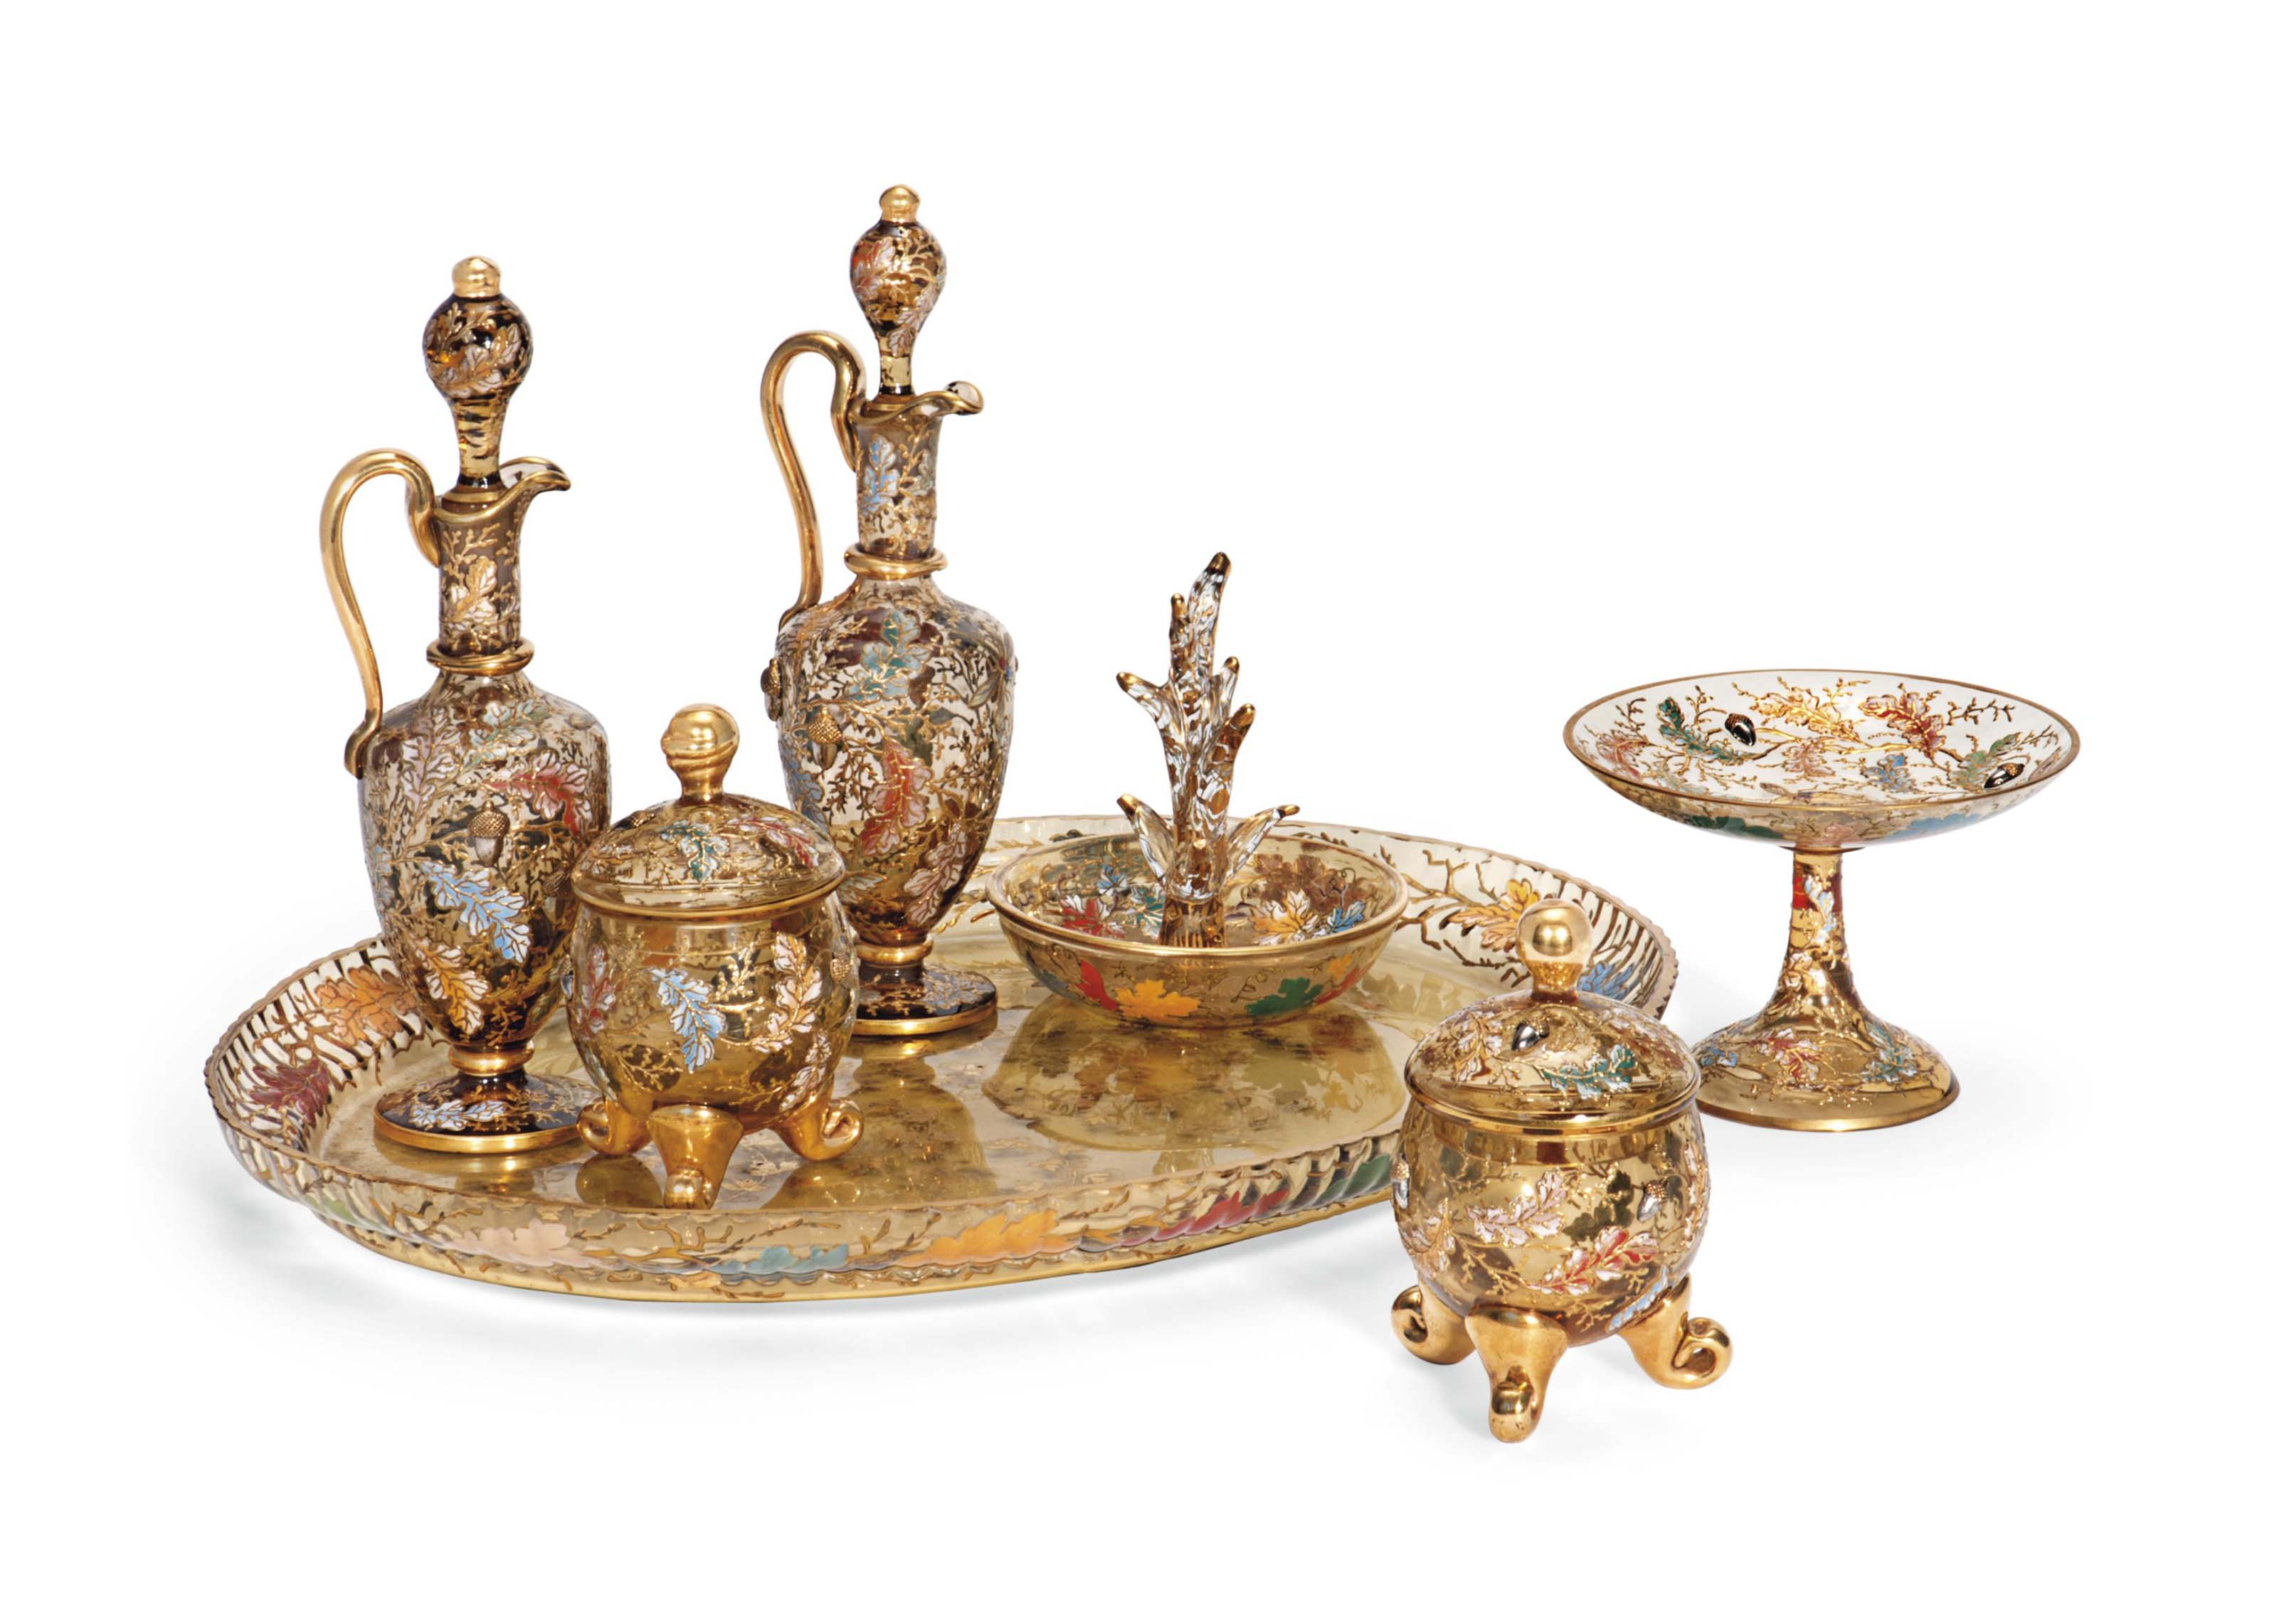 A MOSER ENAMELLED GLASS DRESSING TABLE SET